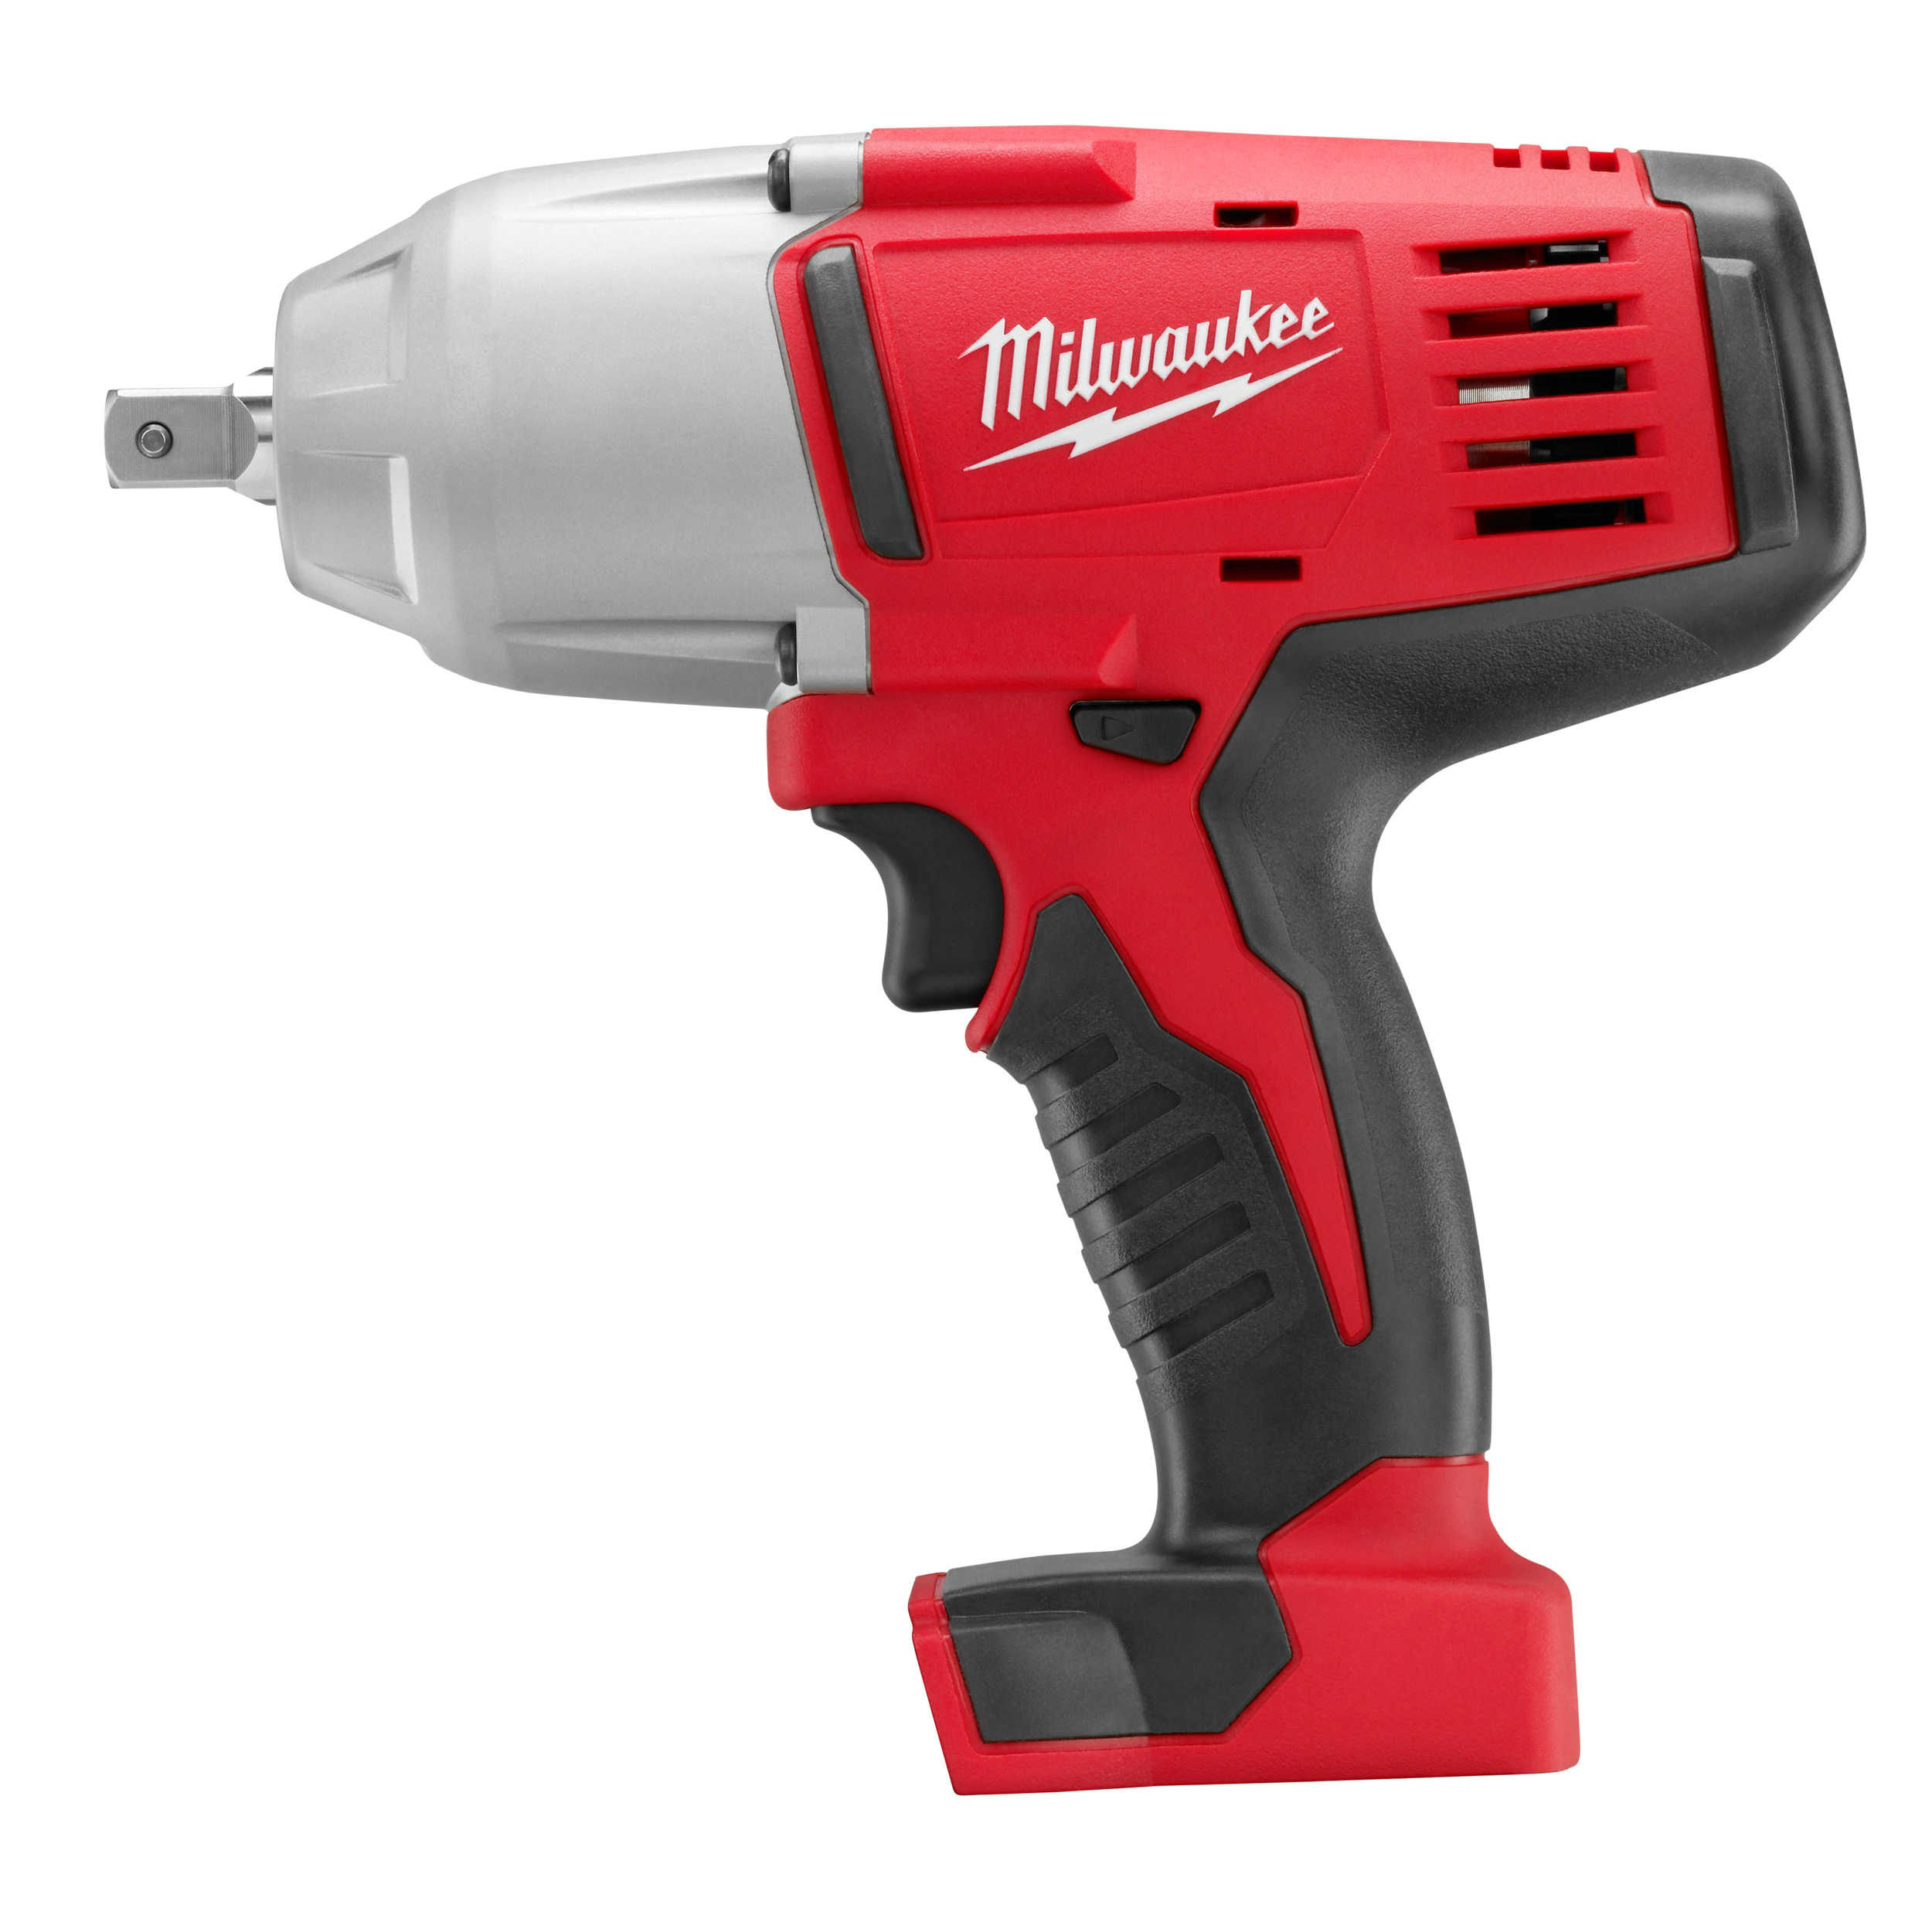 Milwaukee M18 Lithium-Ion High Torque Cordless Impact Wrench - Bare Tool